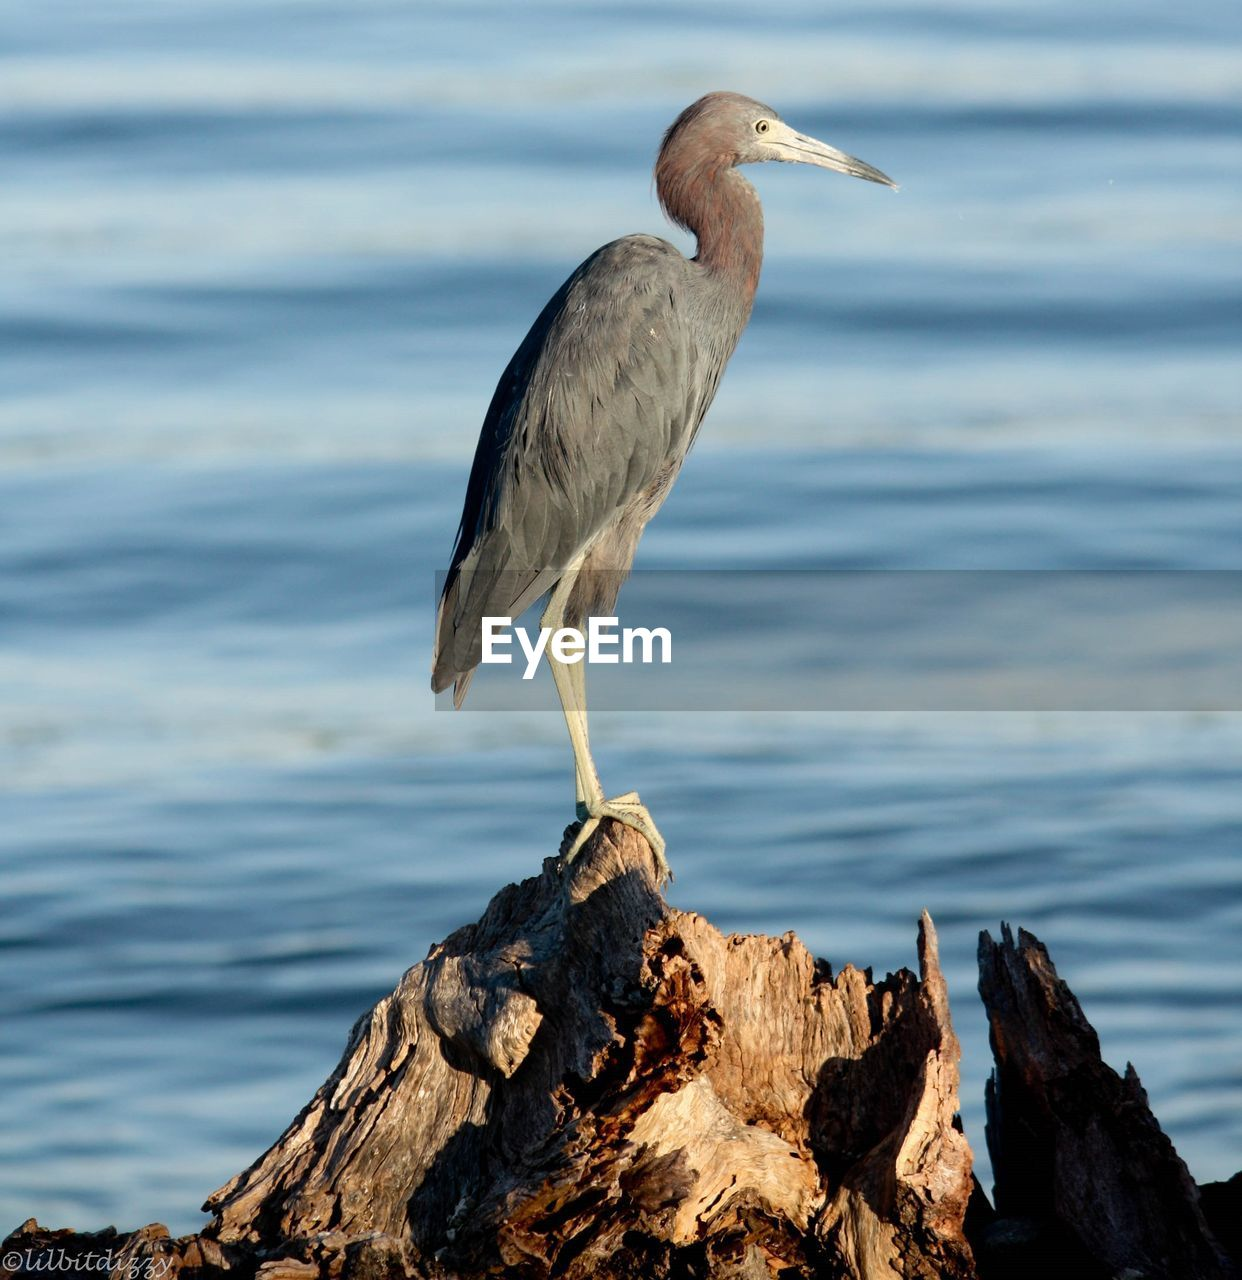 bird, animals in the wild, one animal, rock - object, heron, animal themes, nature, animal wildlife, water, gray heron, day, perching, outdoors, no people, sea, beak, beauty in nature, close-up